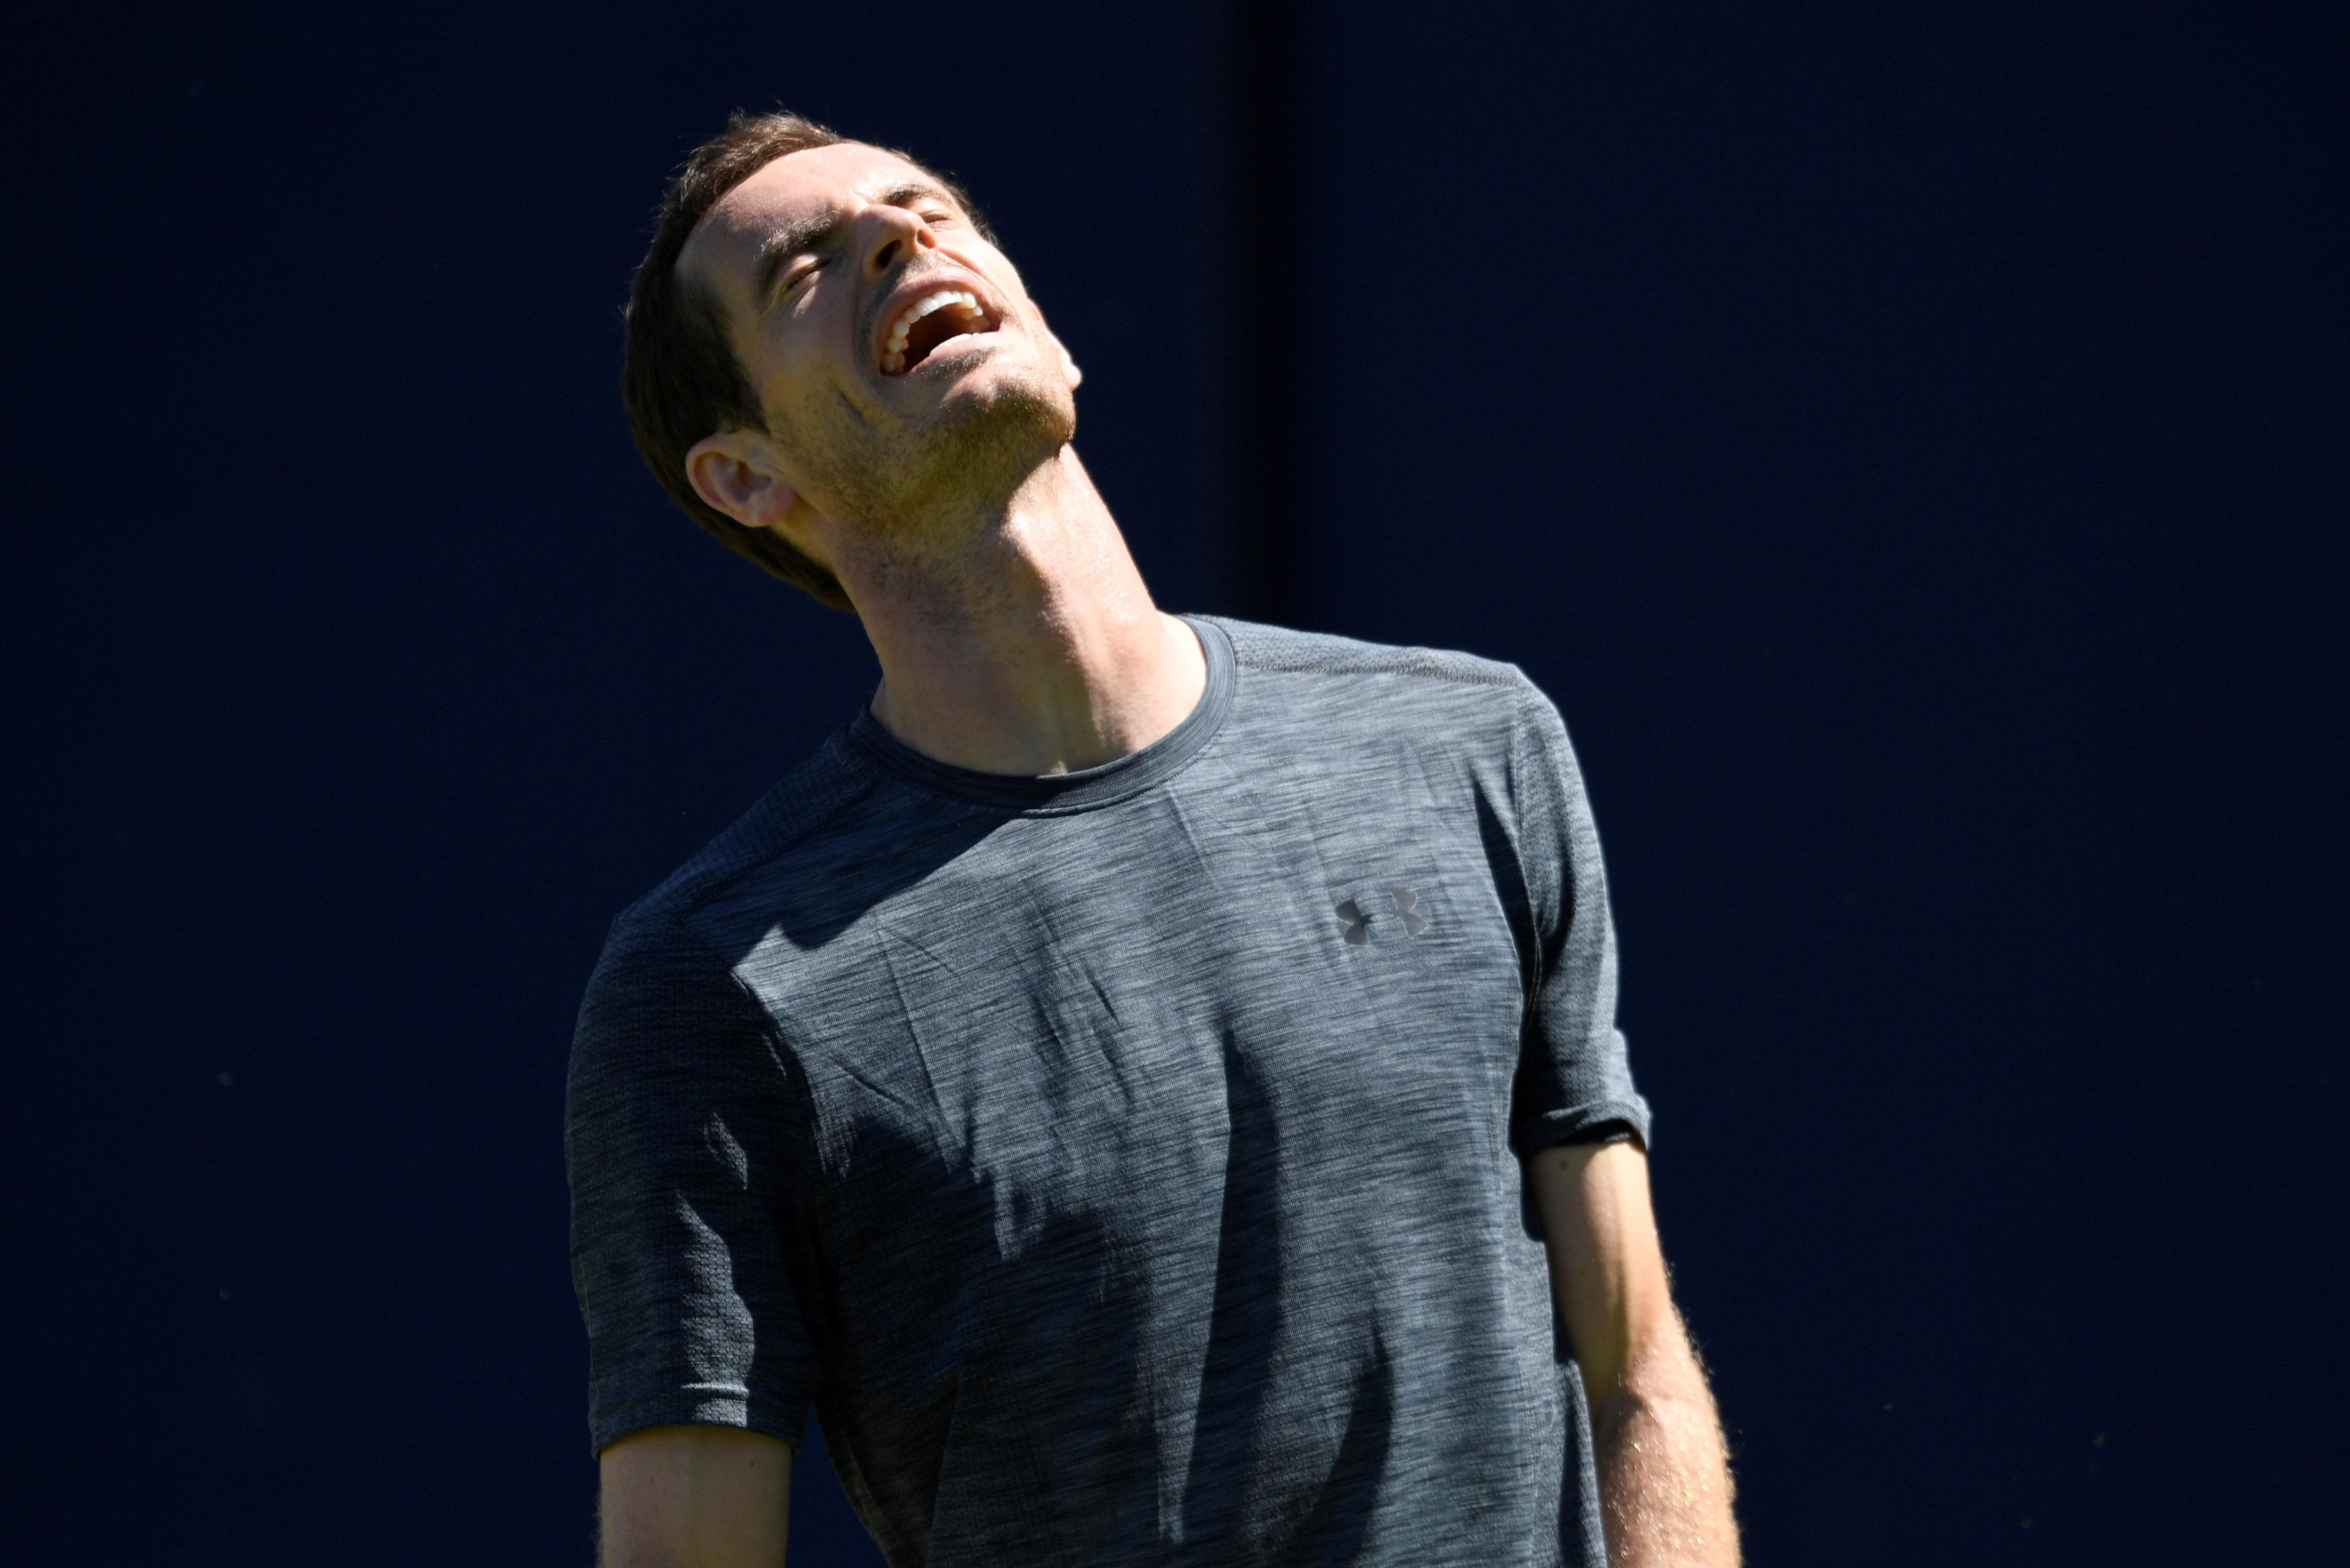 Andy Murray has been forced to put in the hard graft since his hip surgery